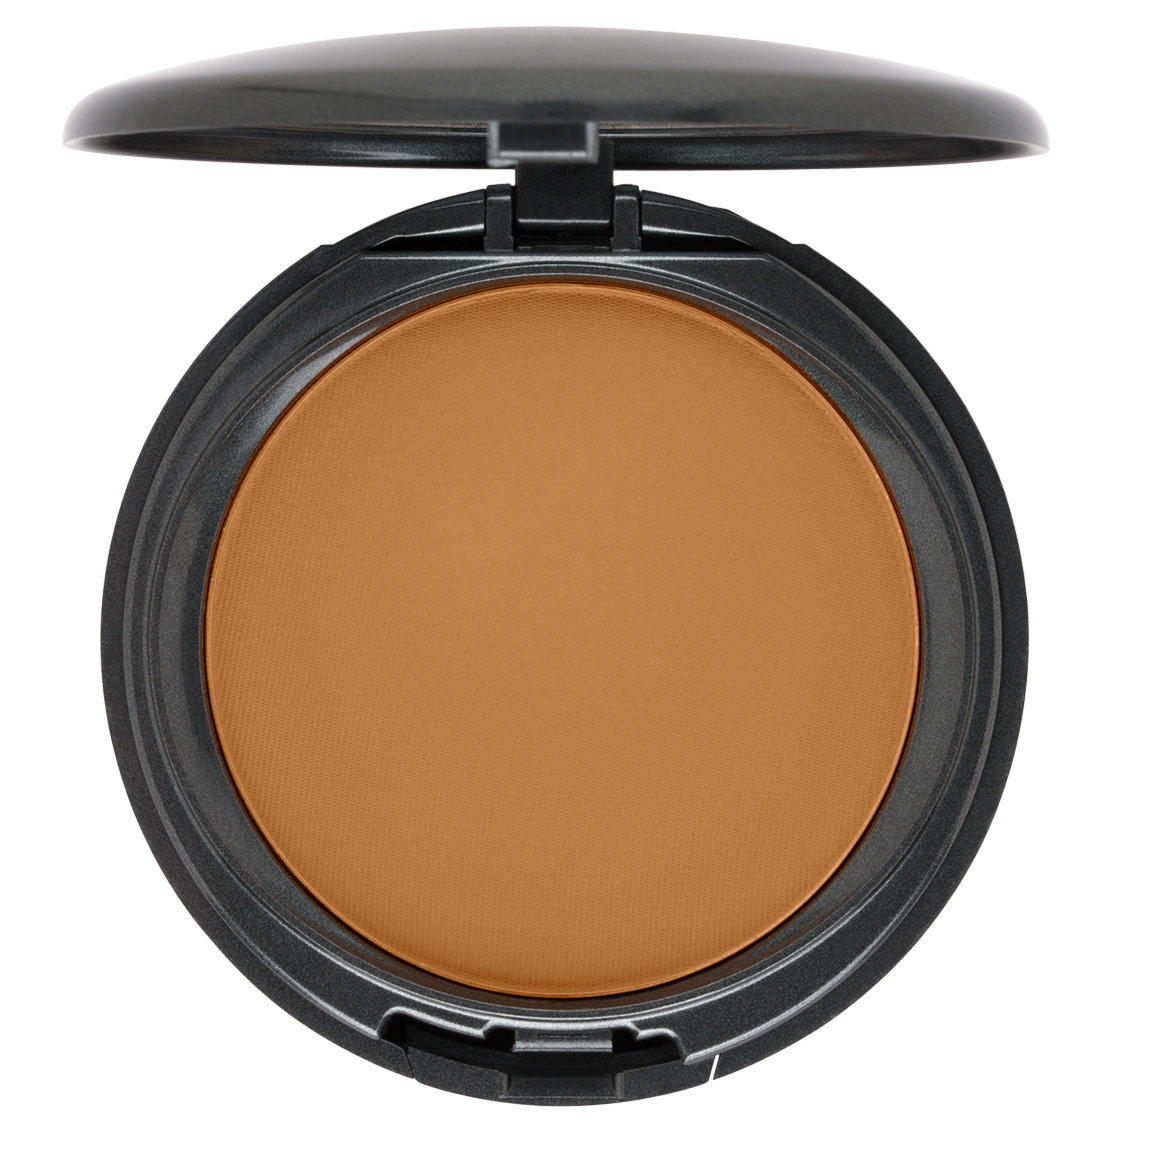 Cover FX Pressed Mineral Foundation N70